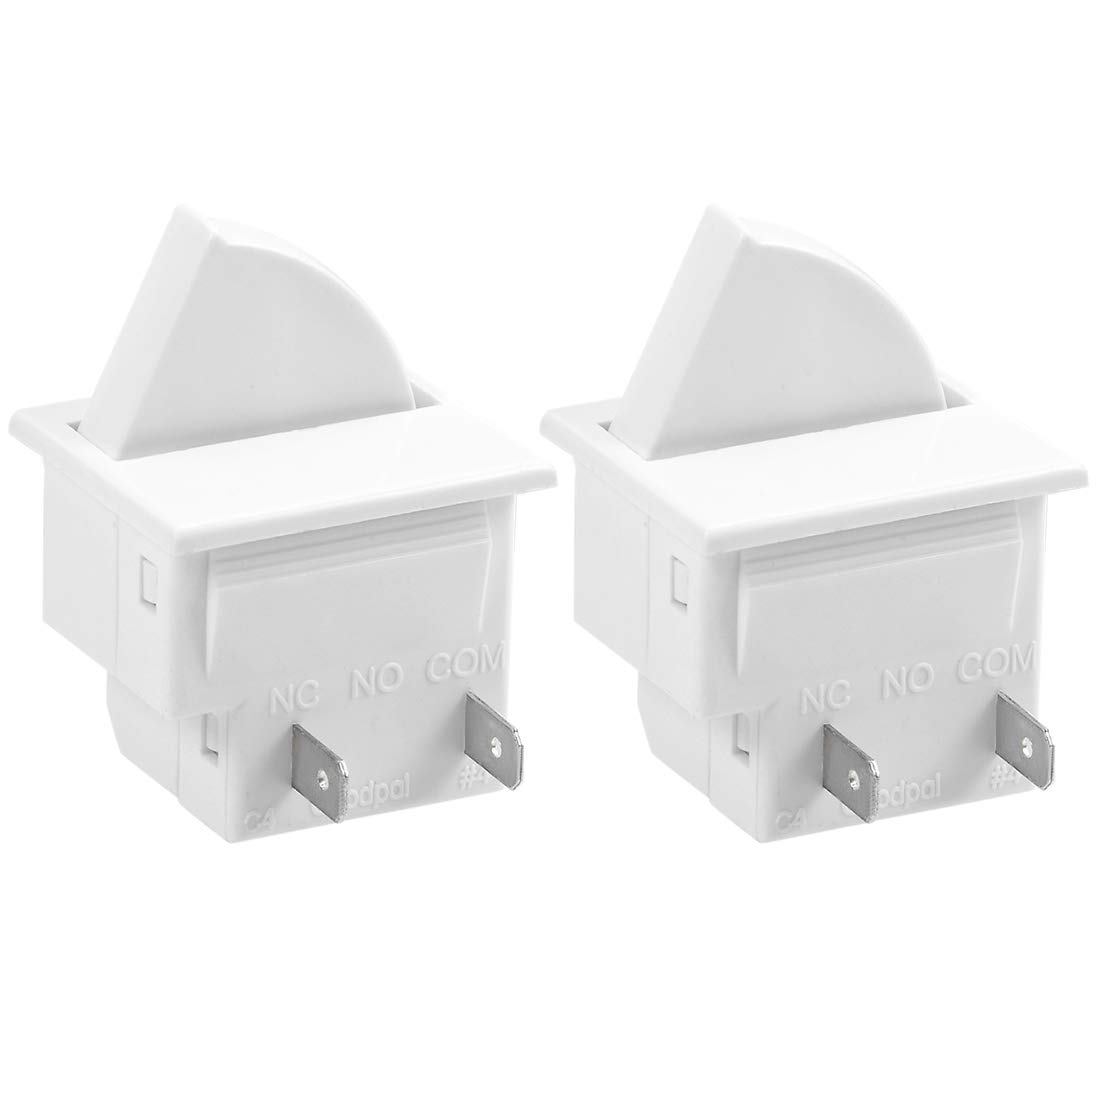 uxcell Refrigerator Door Light Switch LTK-17 Momentary Fridge Switch Normally Closed 0.5A 250V AC